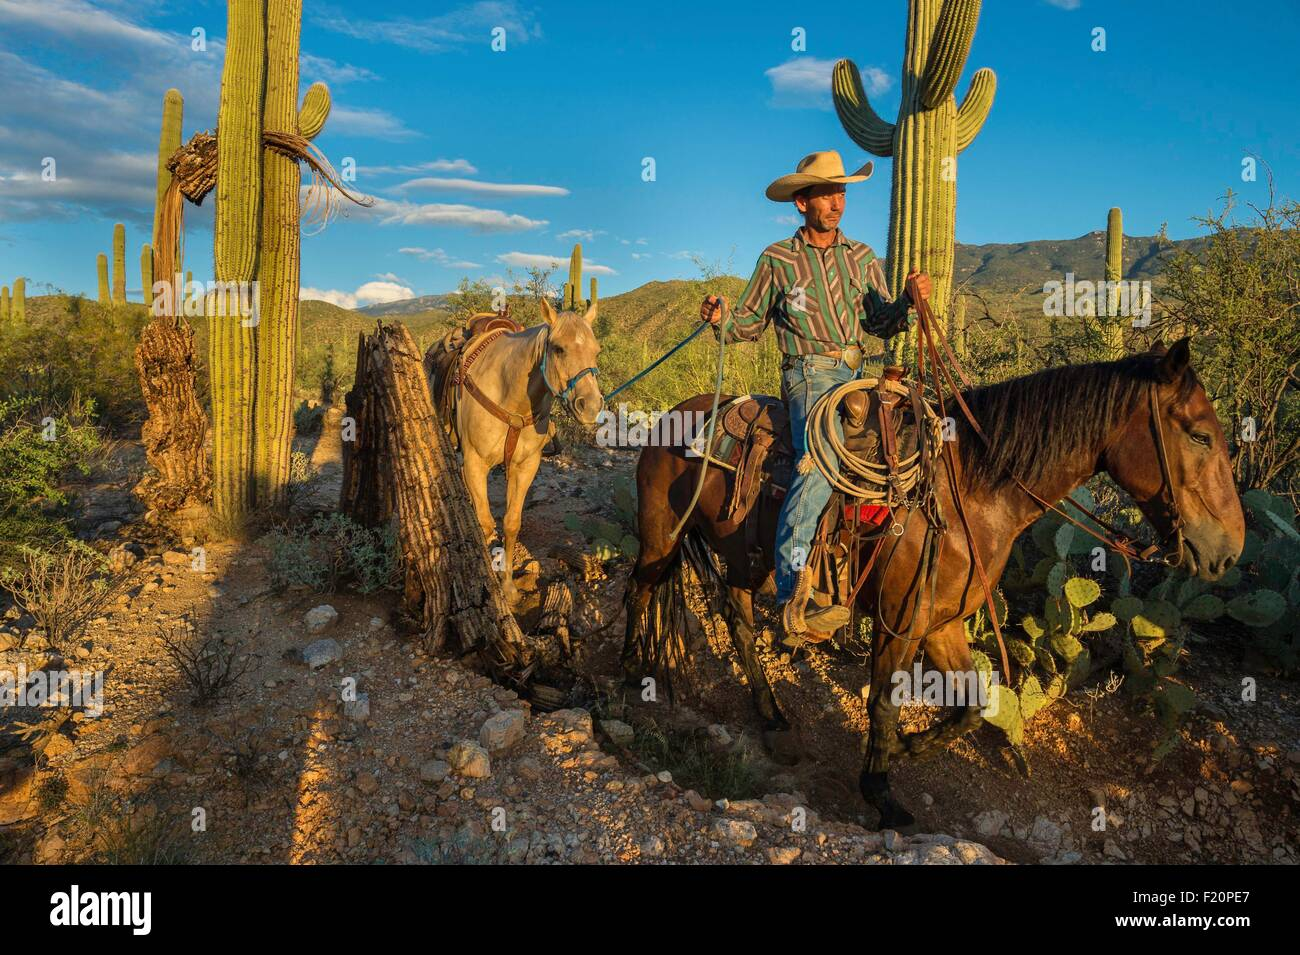 United States, Arizona, Tucson, Saguaro National Park, Tanque verde Ranch, horse hike in the middle of the desert - Stock Image